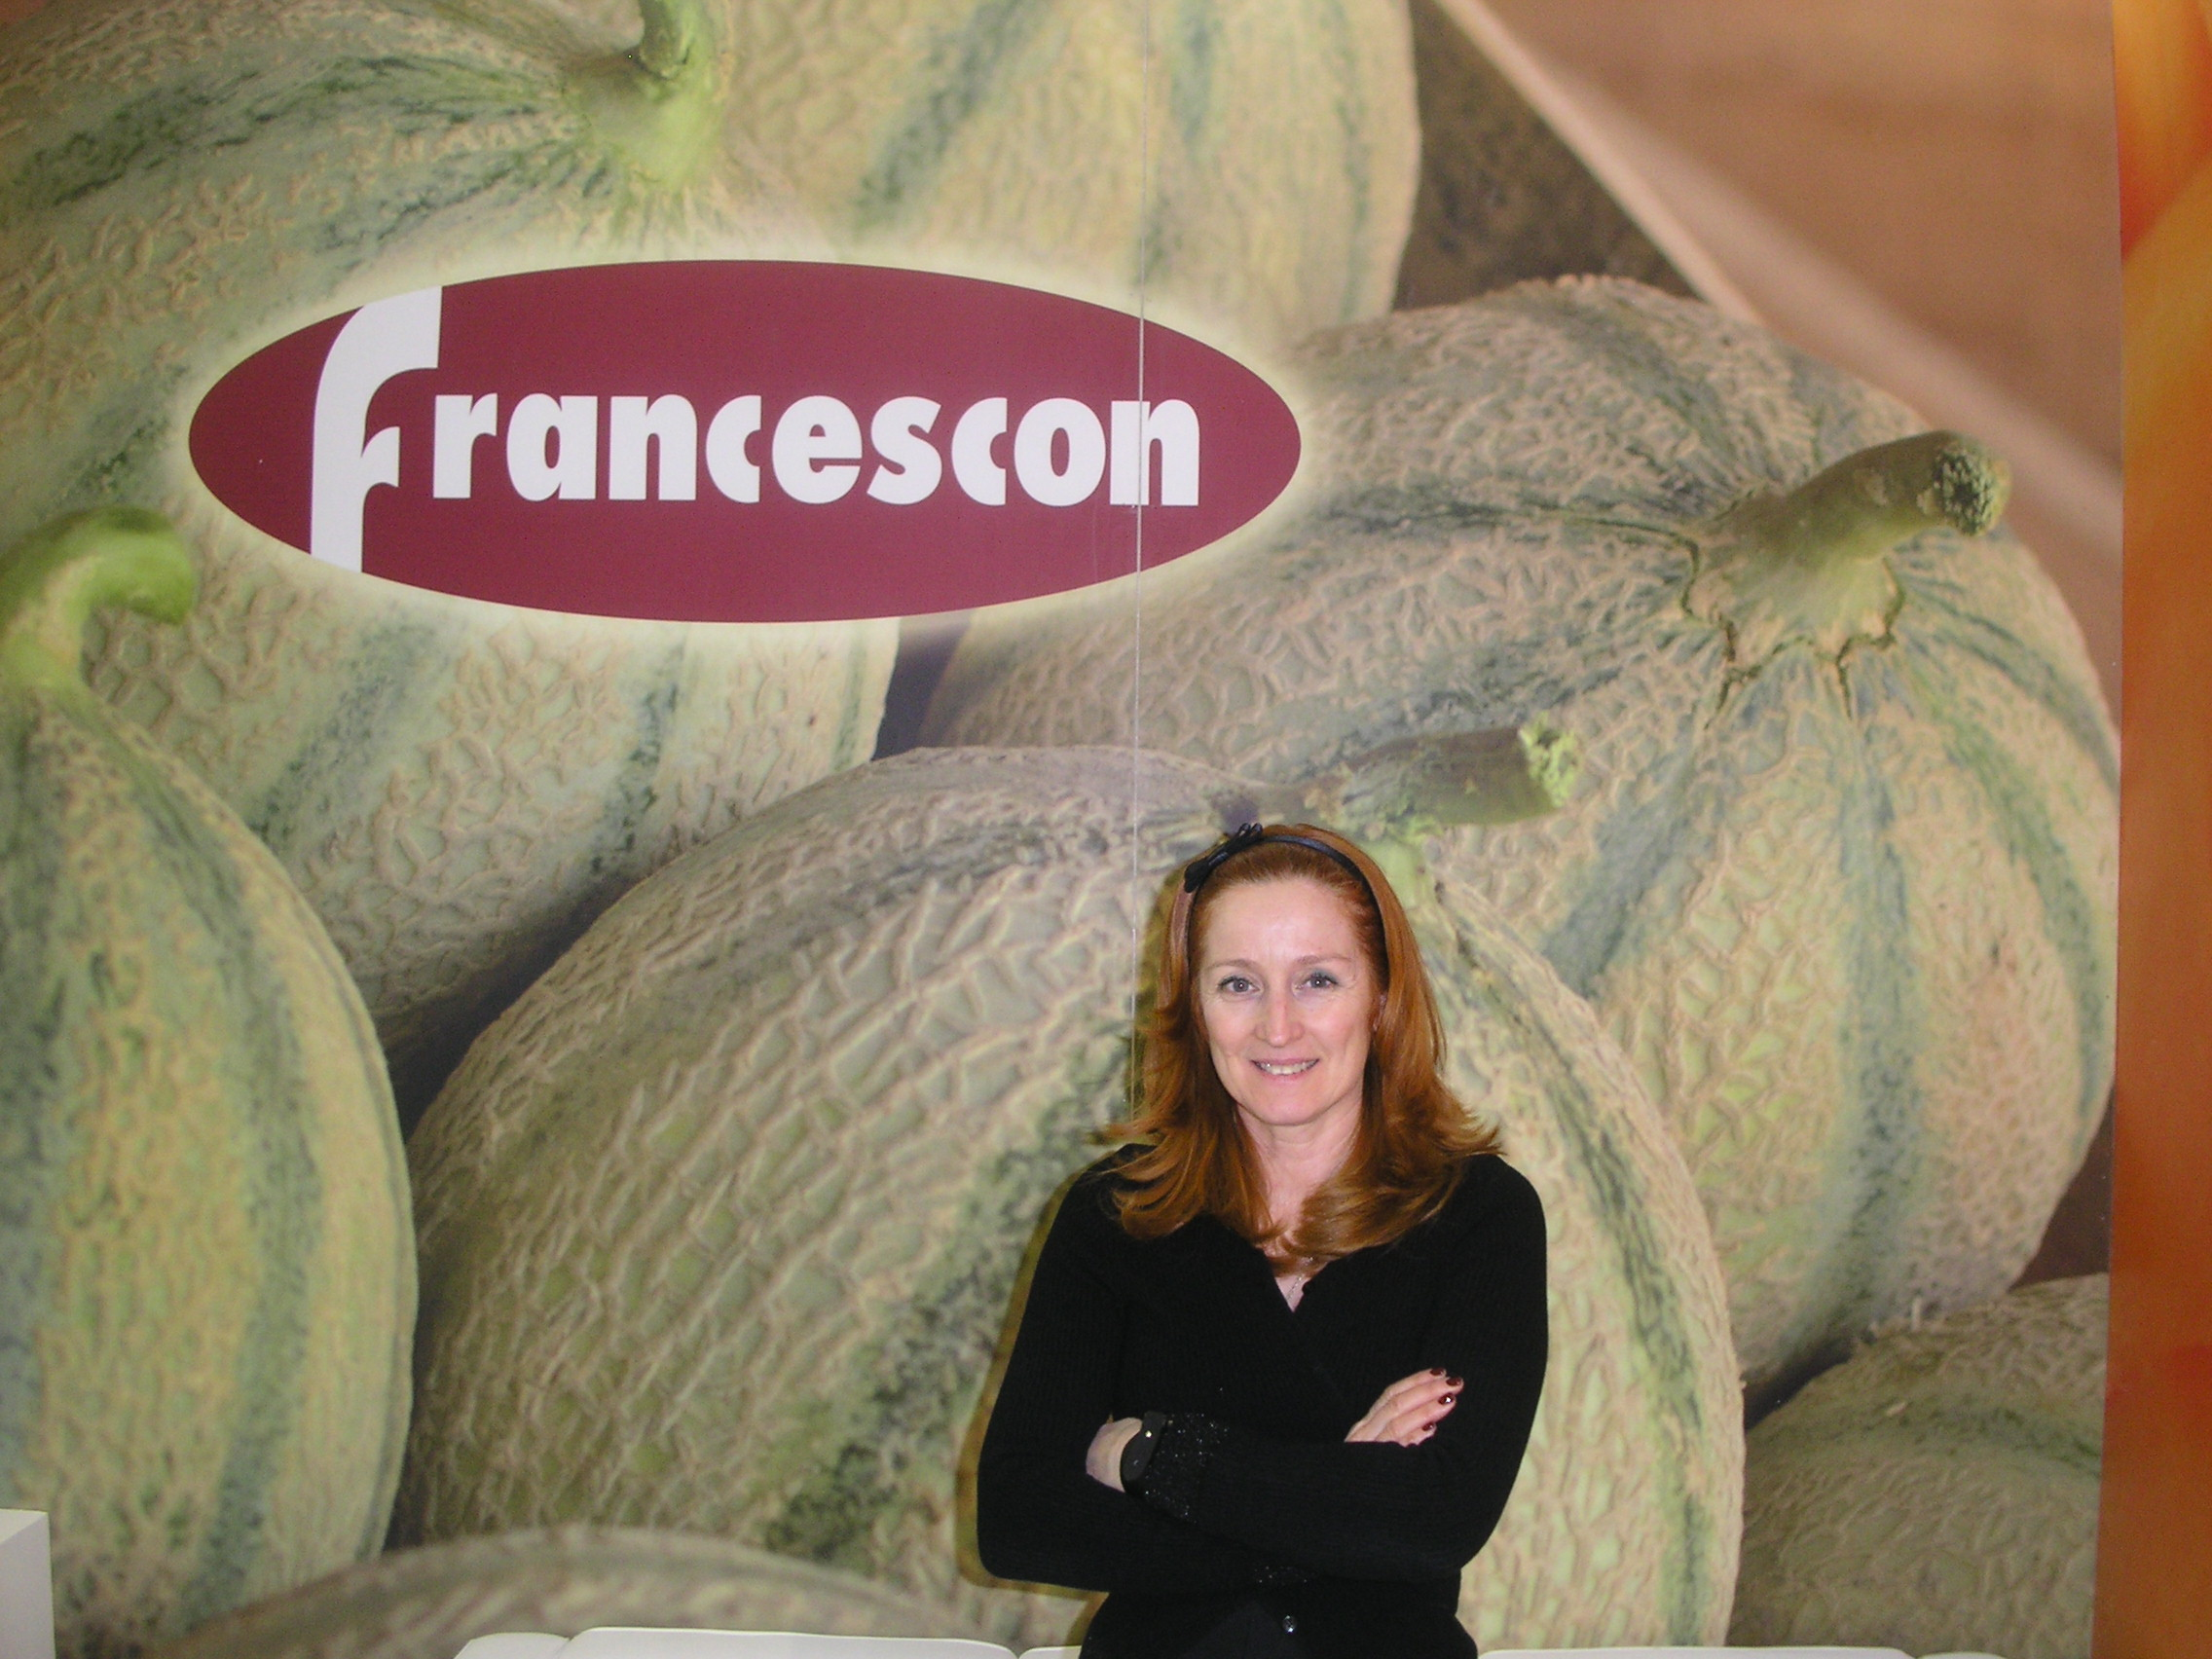 Francescon's off-season began at the end of February with the arrival of cantaloupe melons from Senegal, where it directly farms 120 ha, equating to 4,000 tons of product.